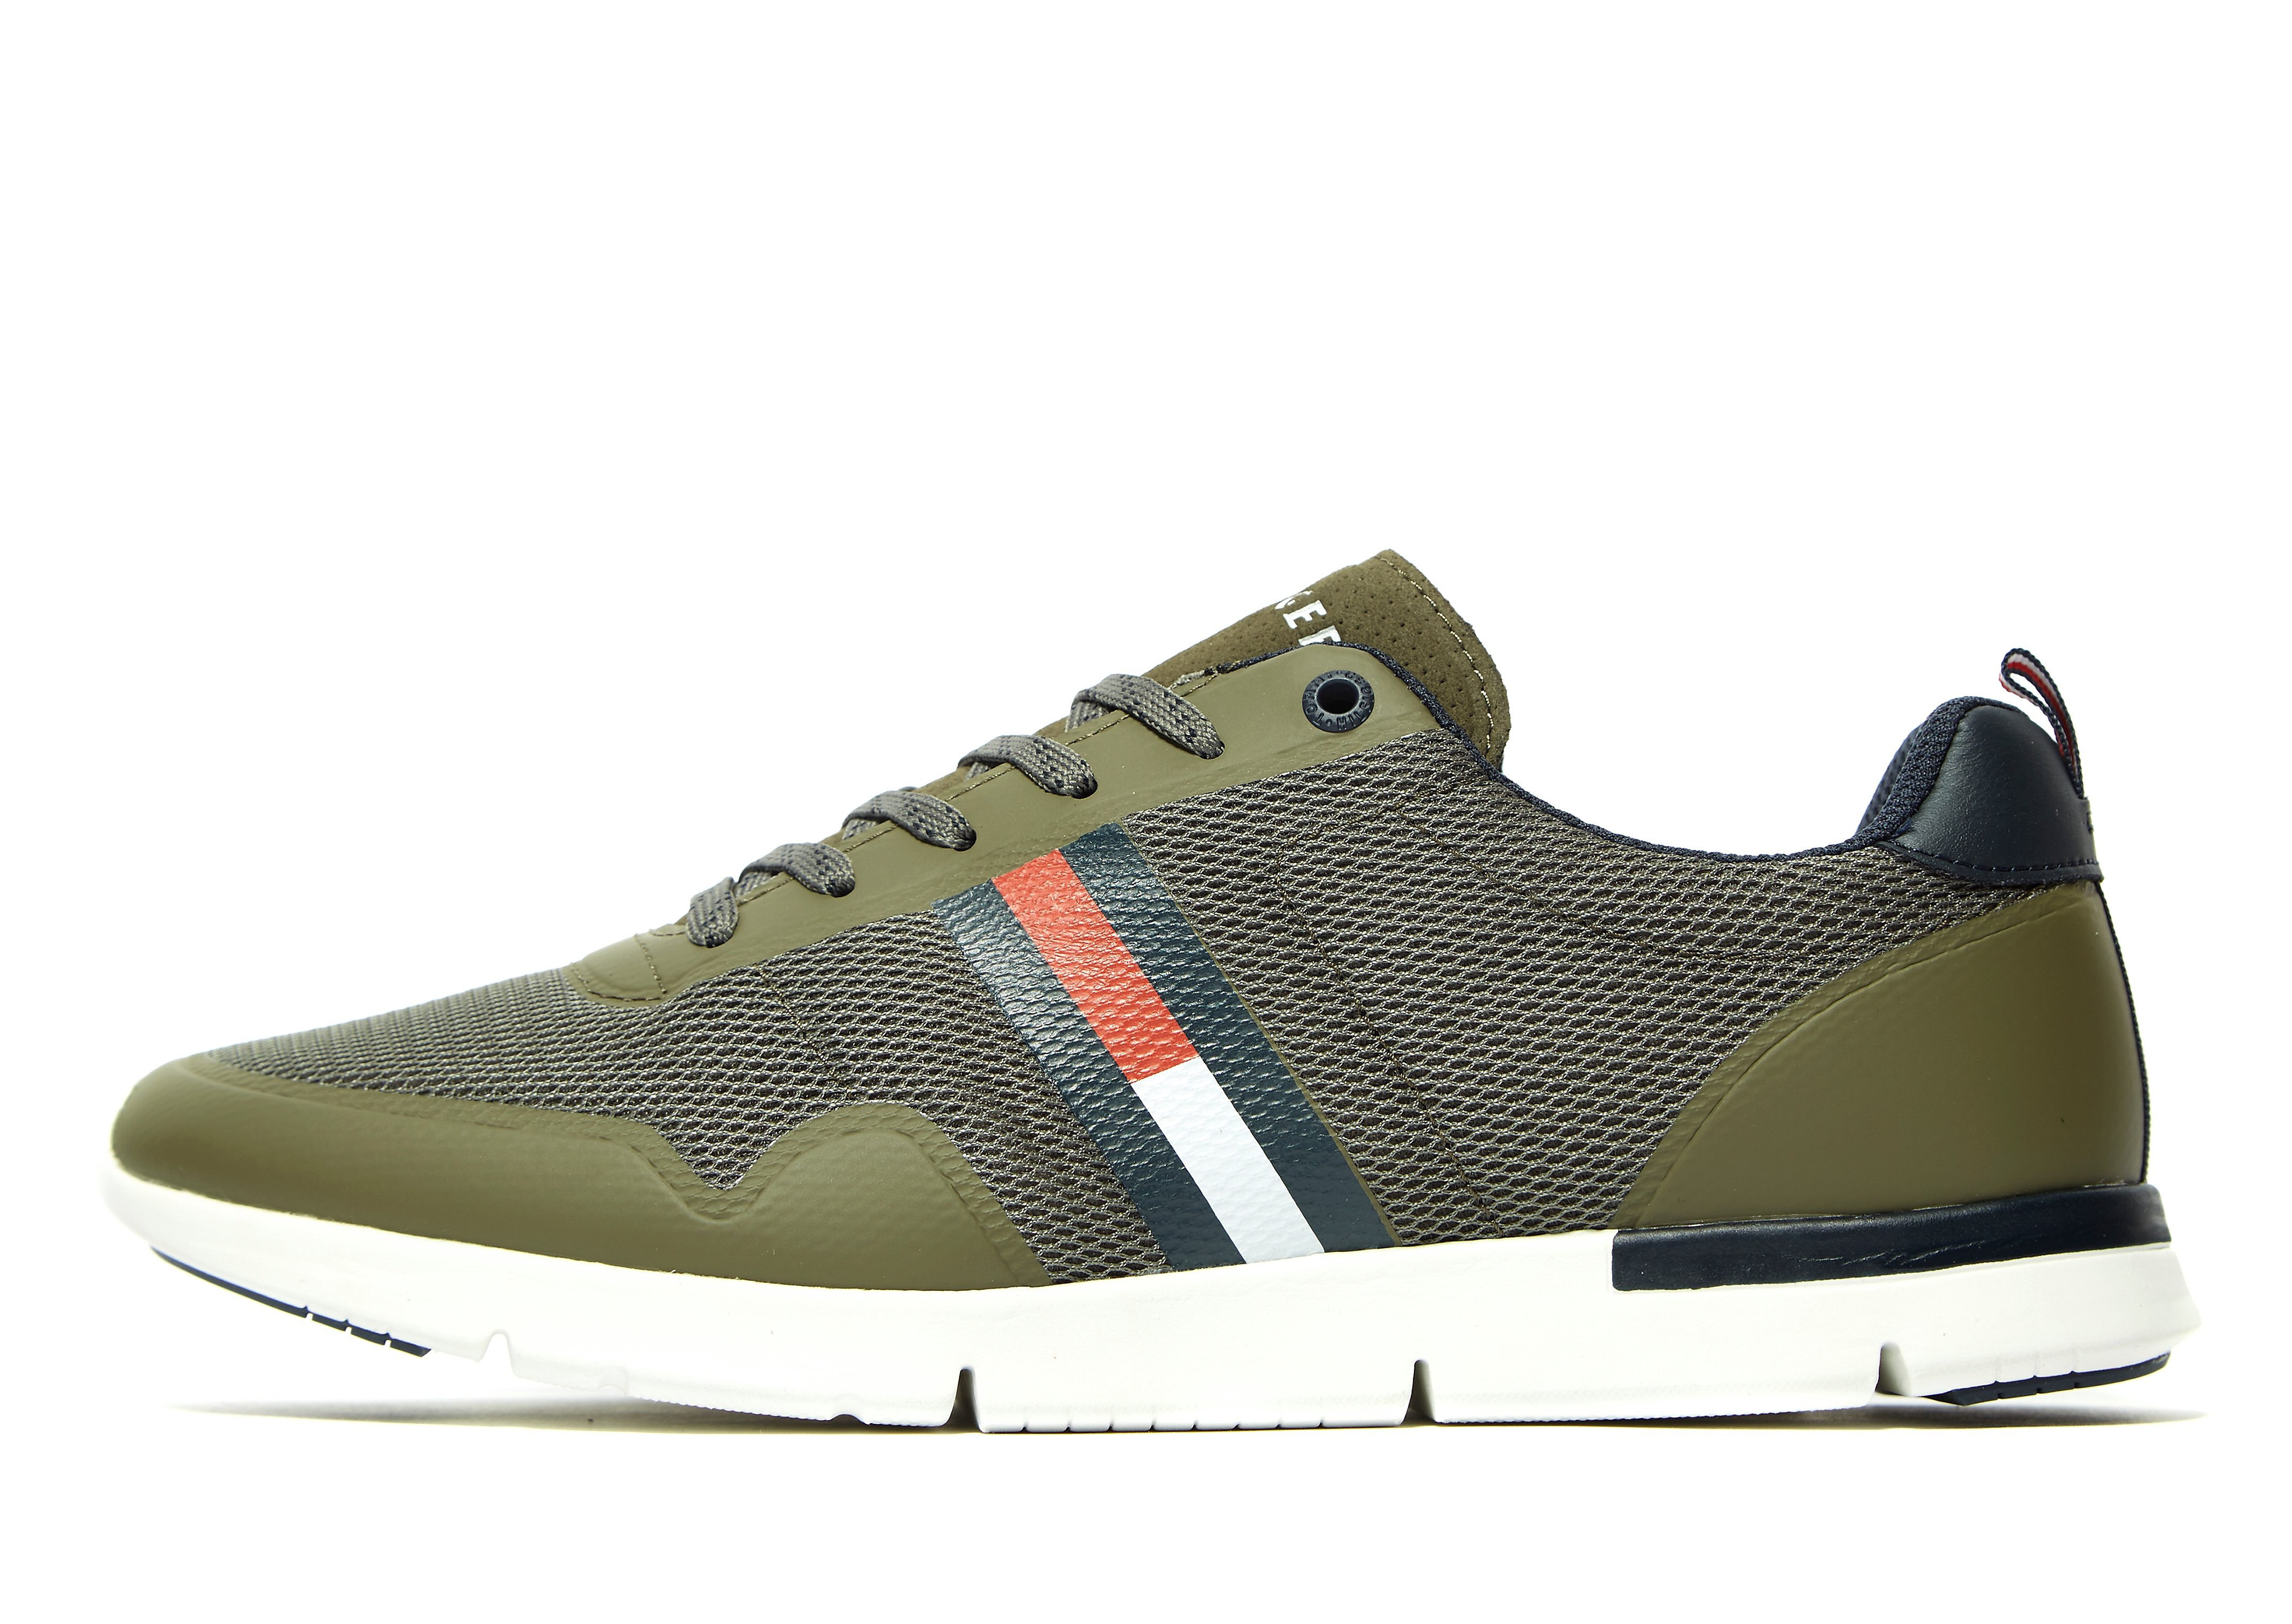 Tommy Hilfiger Tobias 20 Runners